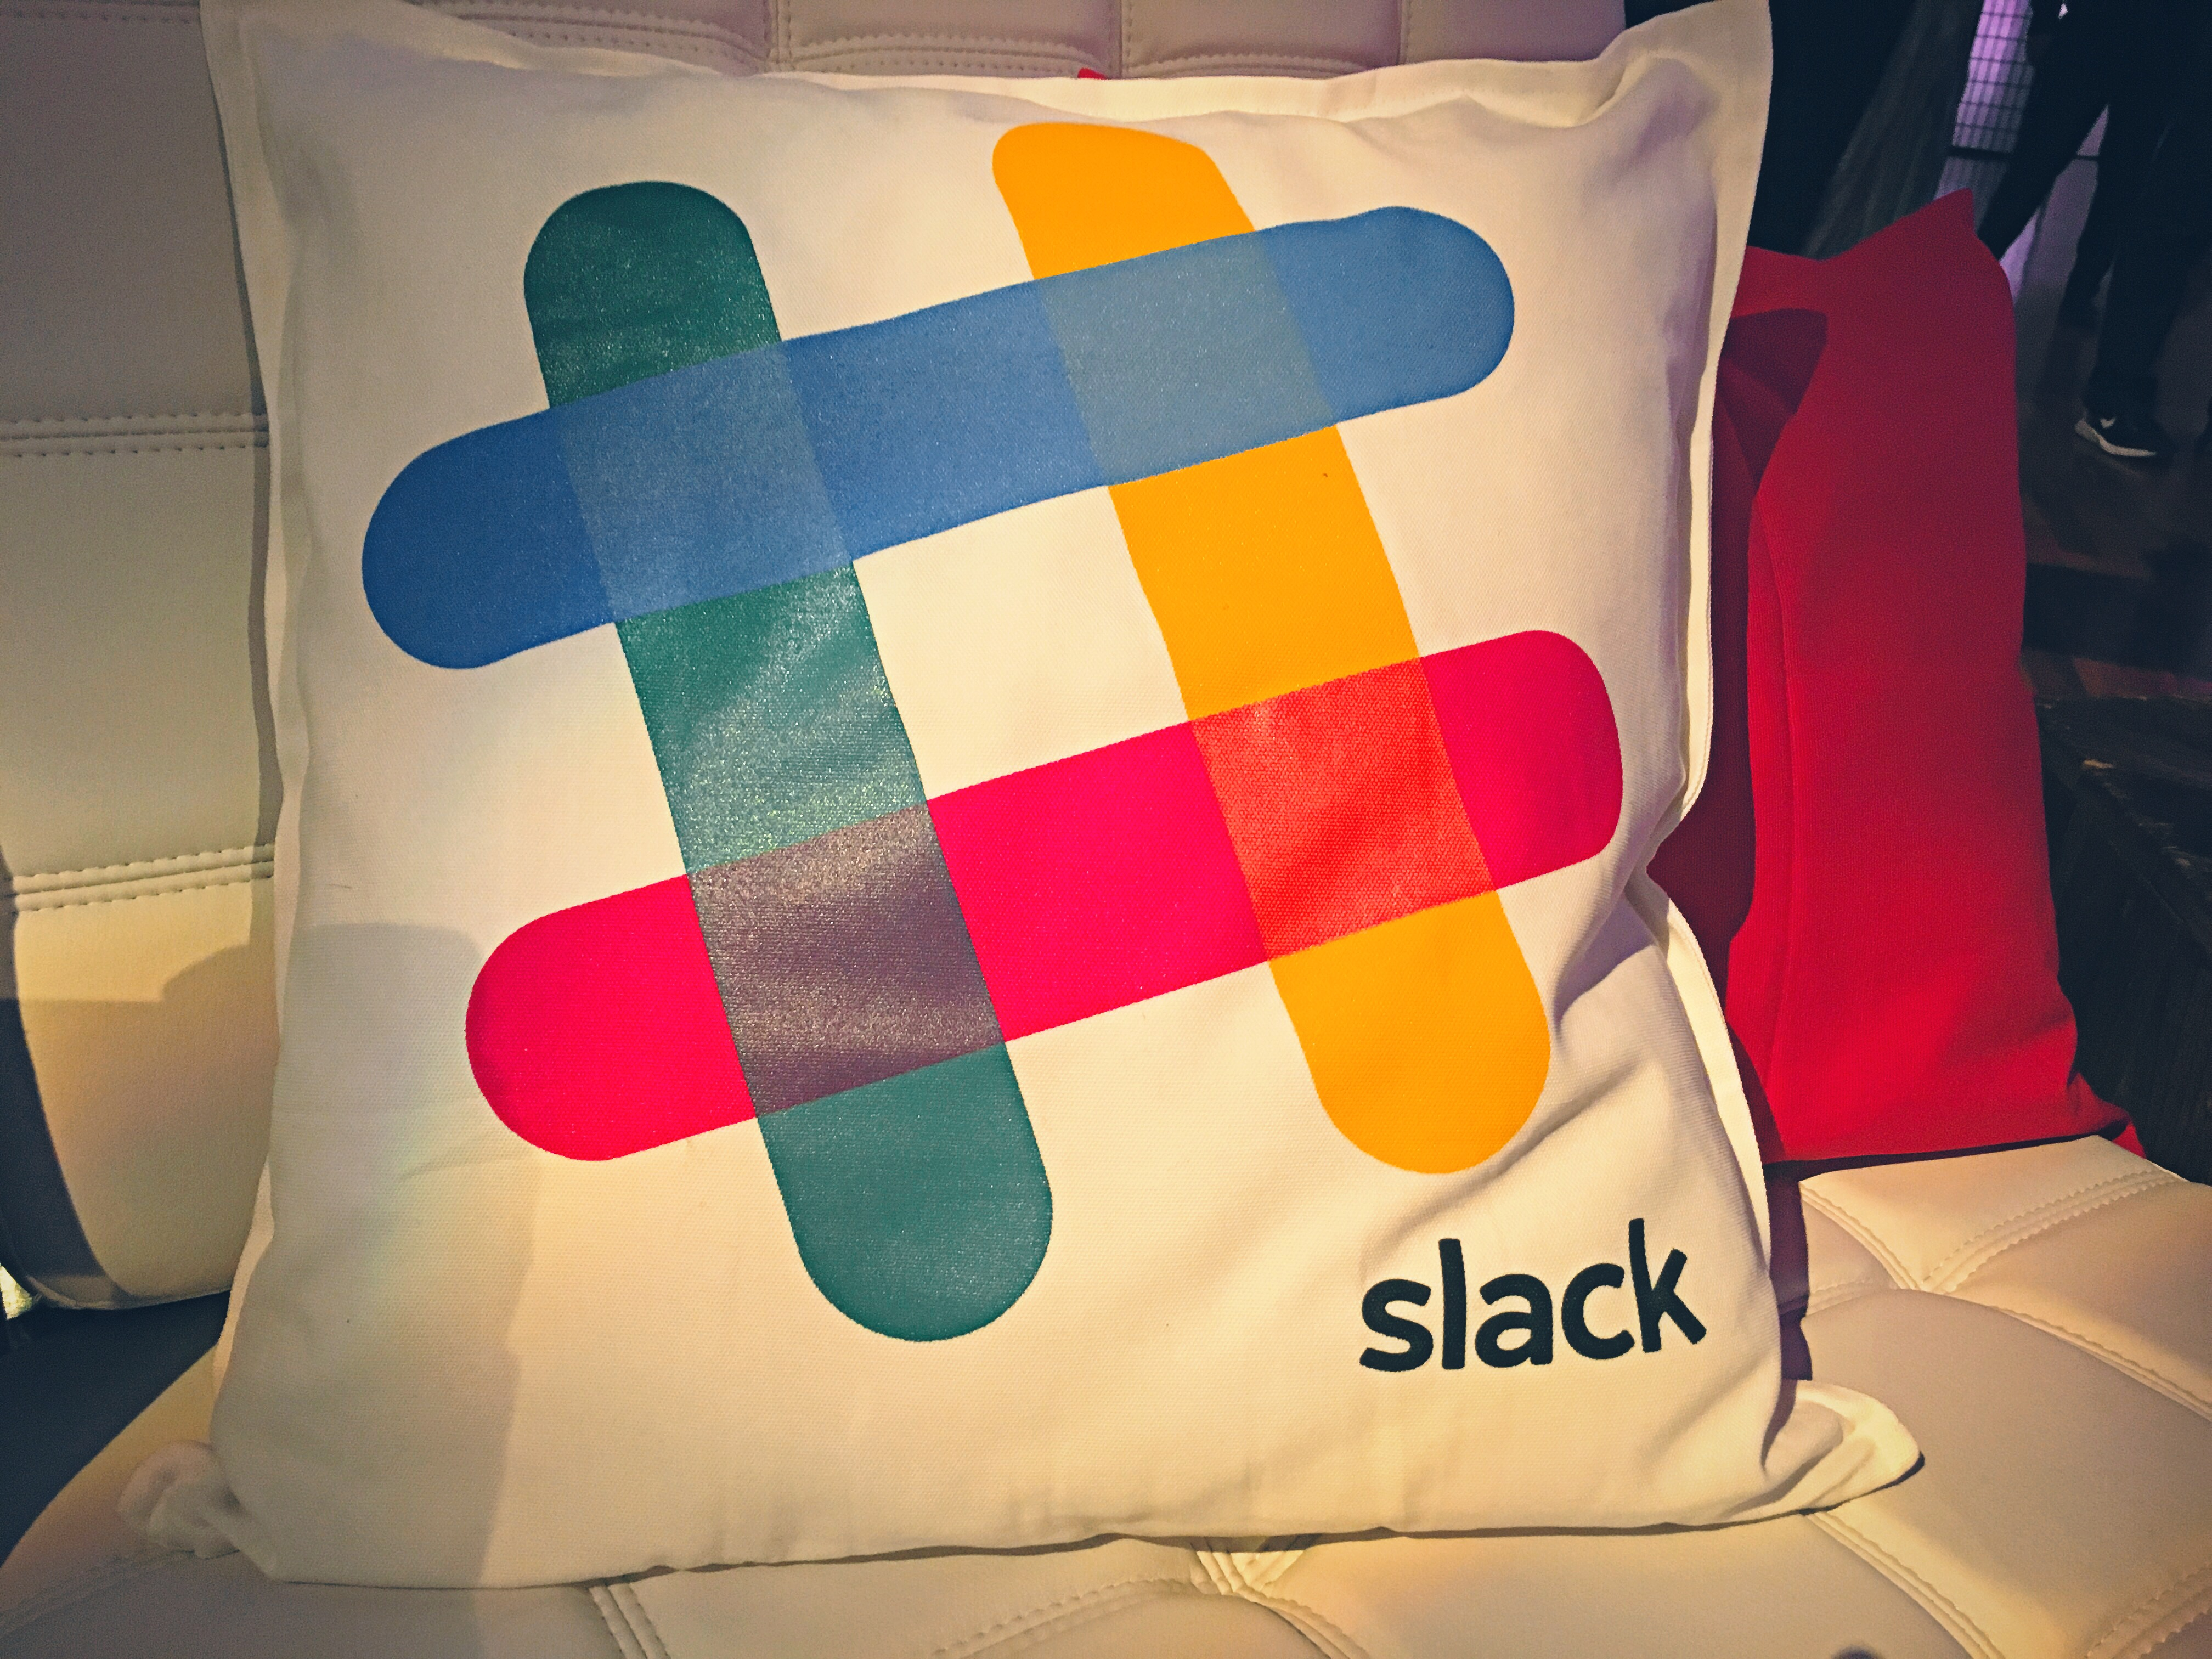 Slack Introduces Shared Channels To Boost Teamwork With Outsiders